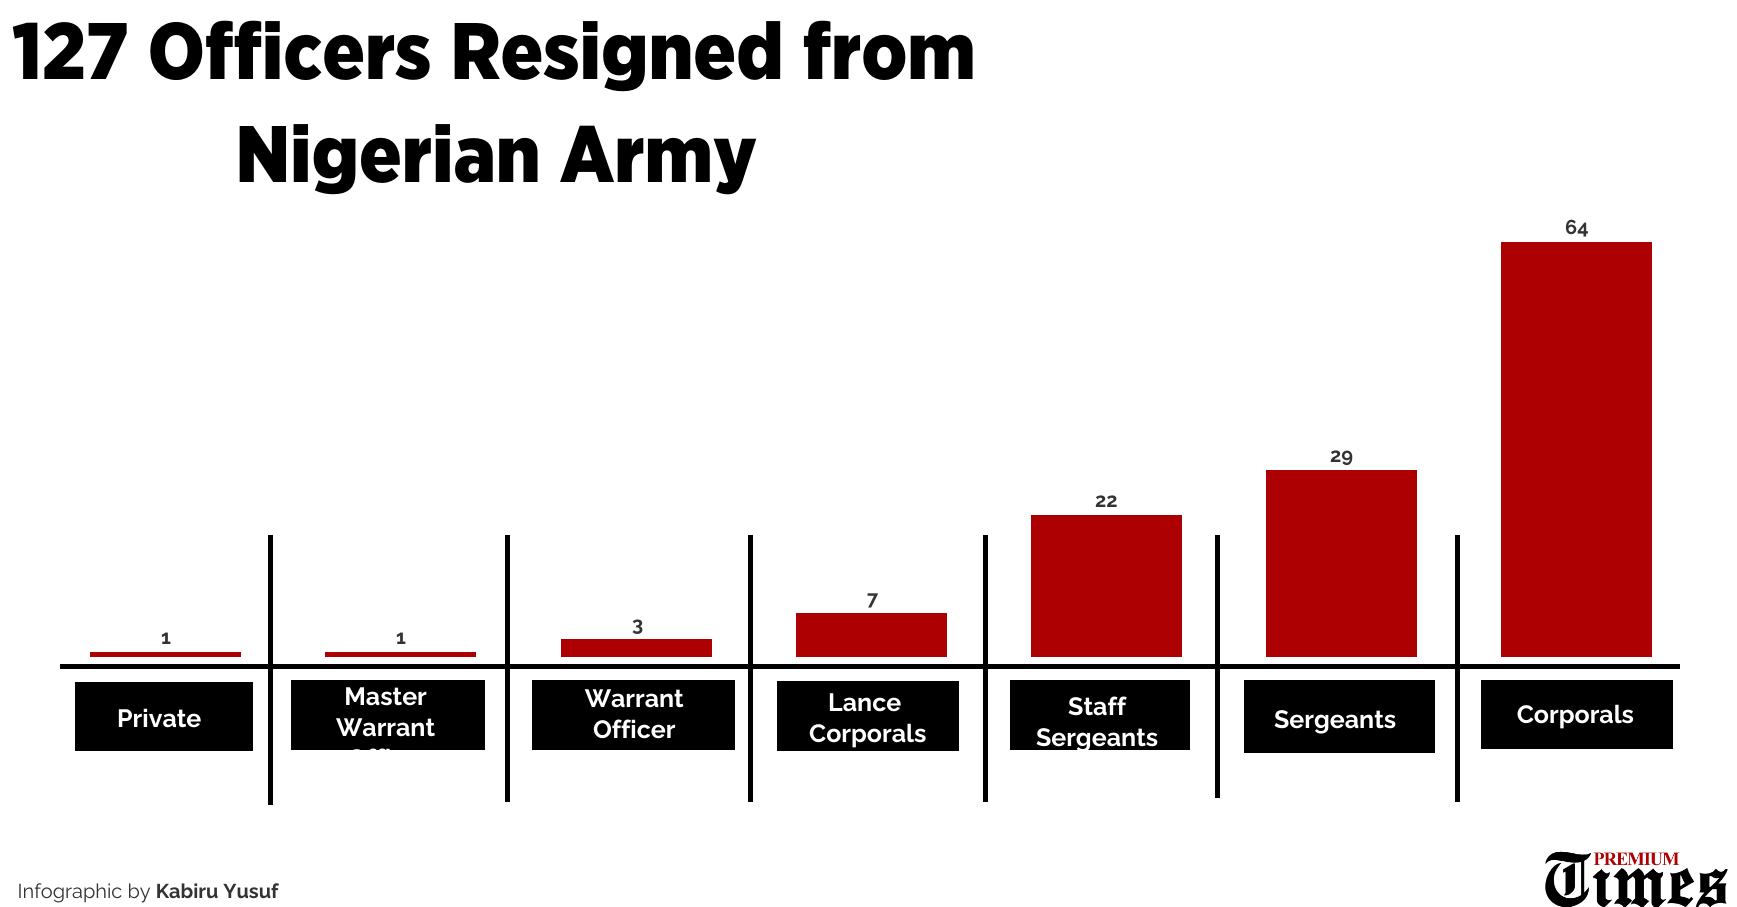 127 Officers Resigned From the Nigerian Army